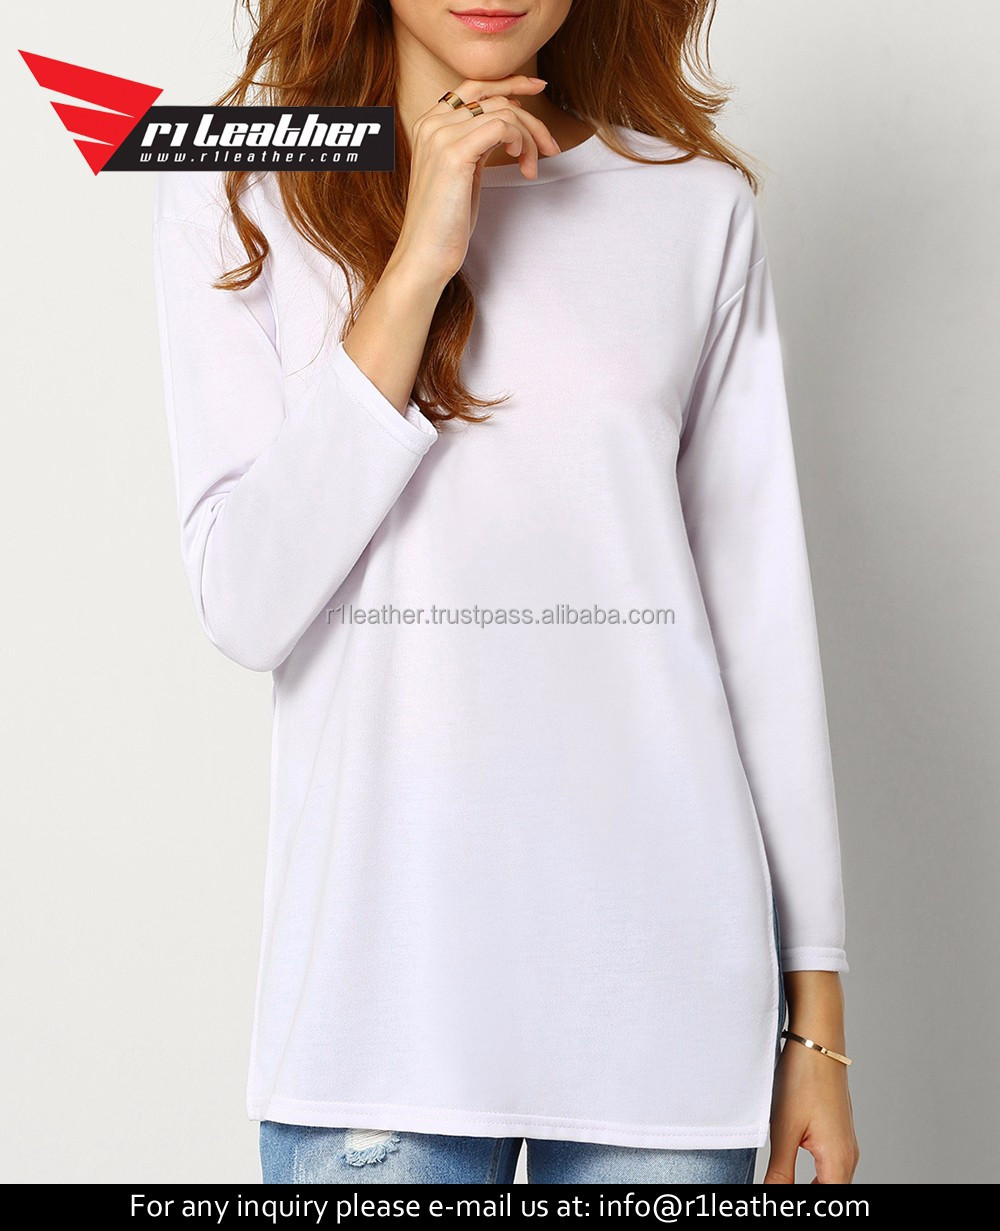 Fast delivery Regular fit long sleeves plain t-shirts wholesale blank t shirts woman apparel digital printing